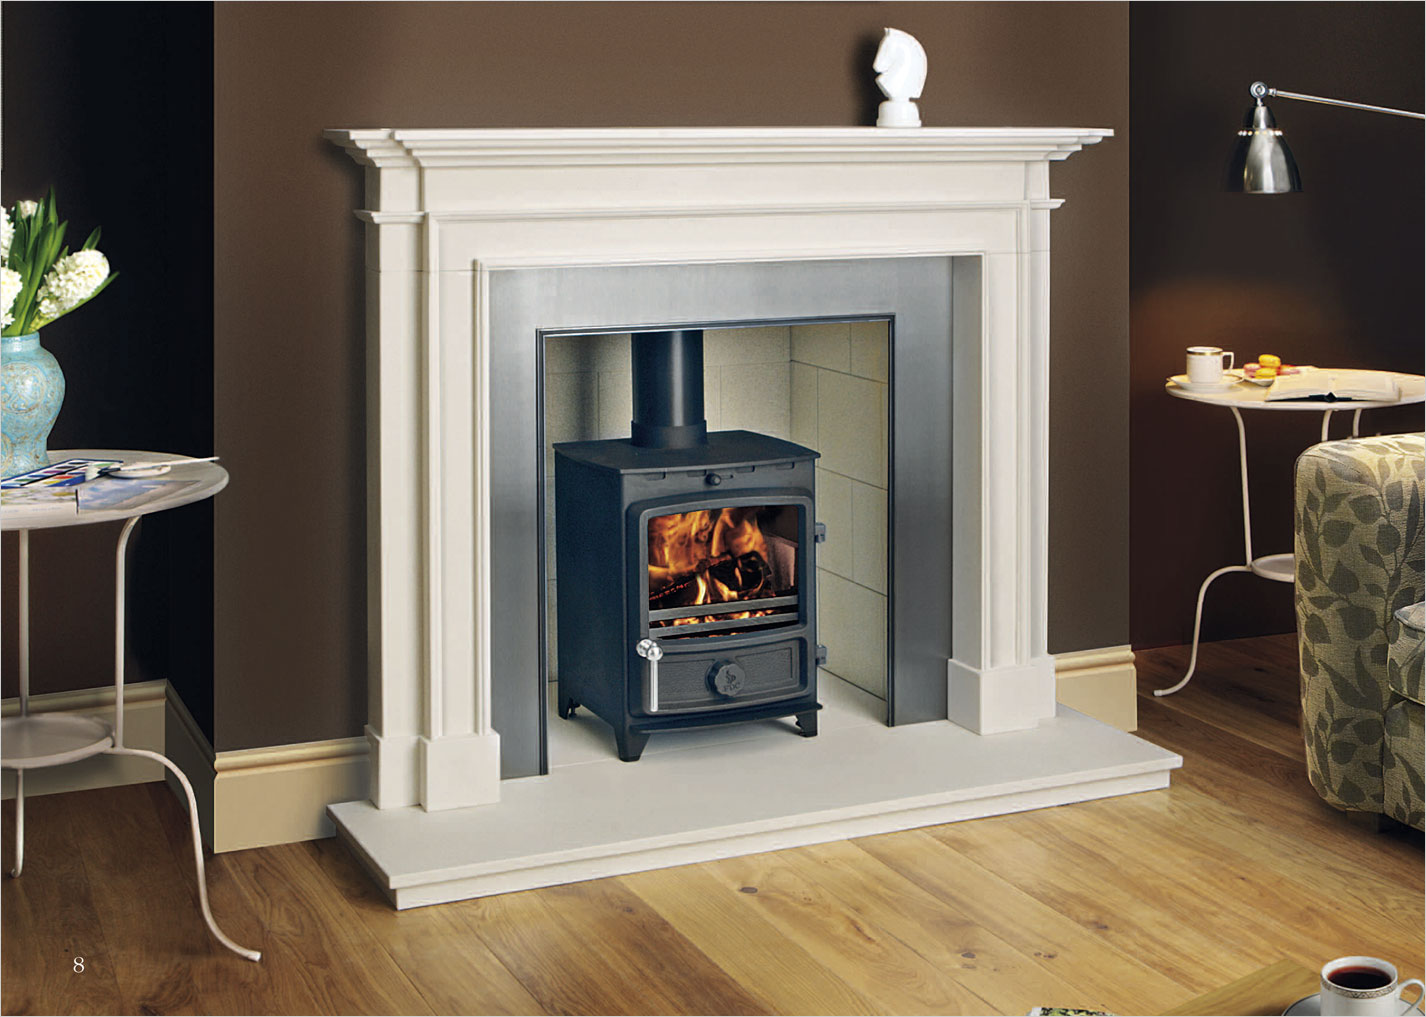 FDC_Stoves_S_Compressed_2015-10